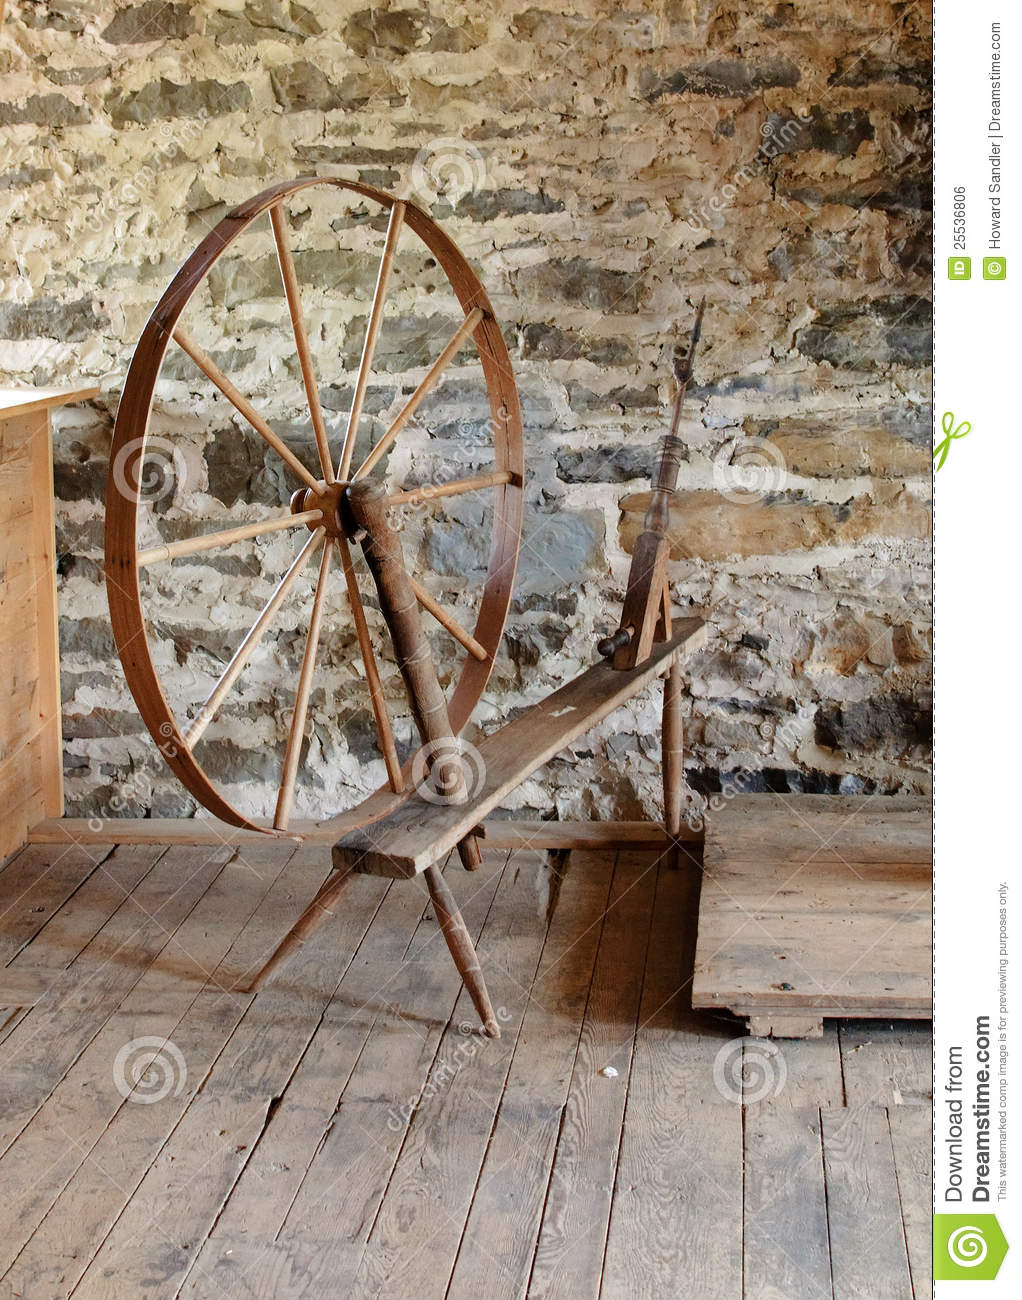 1 232 Antique Spinning Wheel Photos Free Royalty Free Stock Photos From Dreamstime